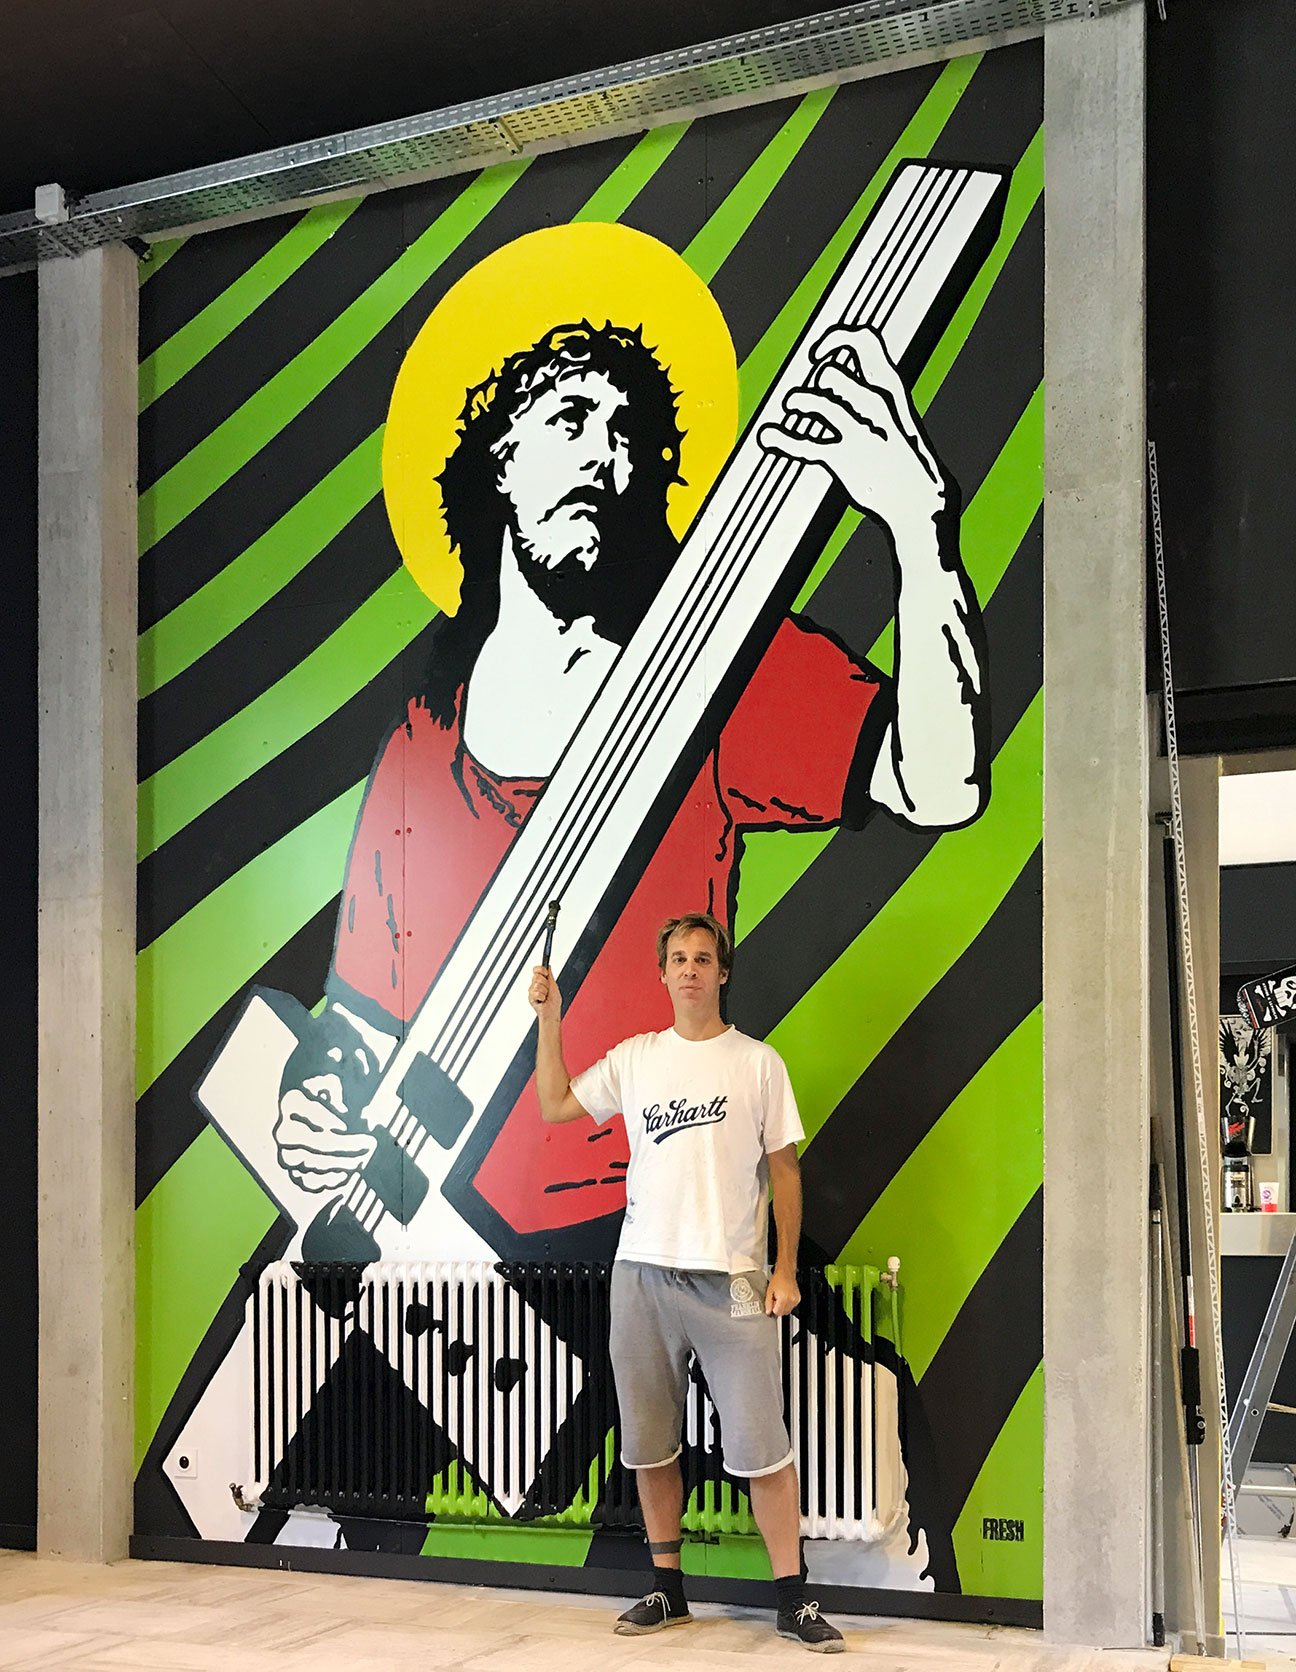 Fabien_cuffel_LePoulpe_Resto_Bar_Concert_Wall_Painting_Jesus